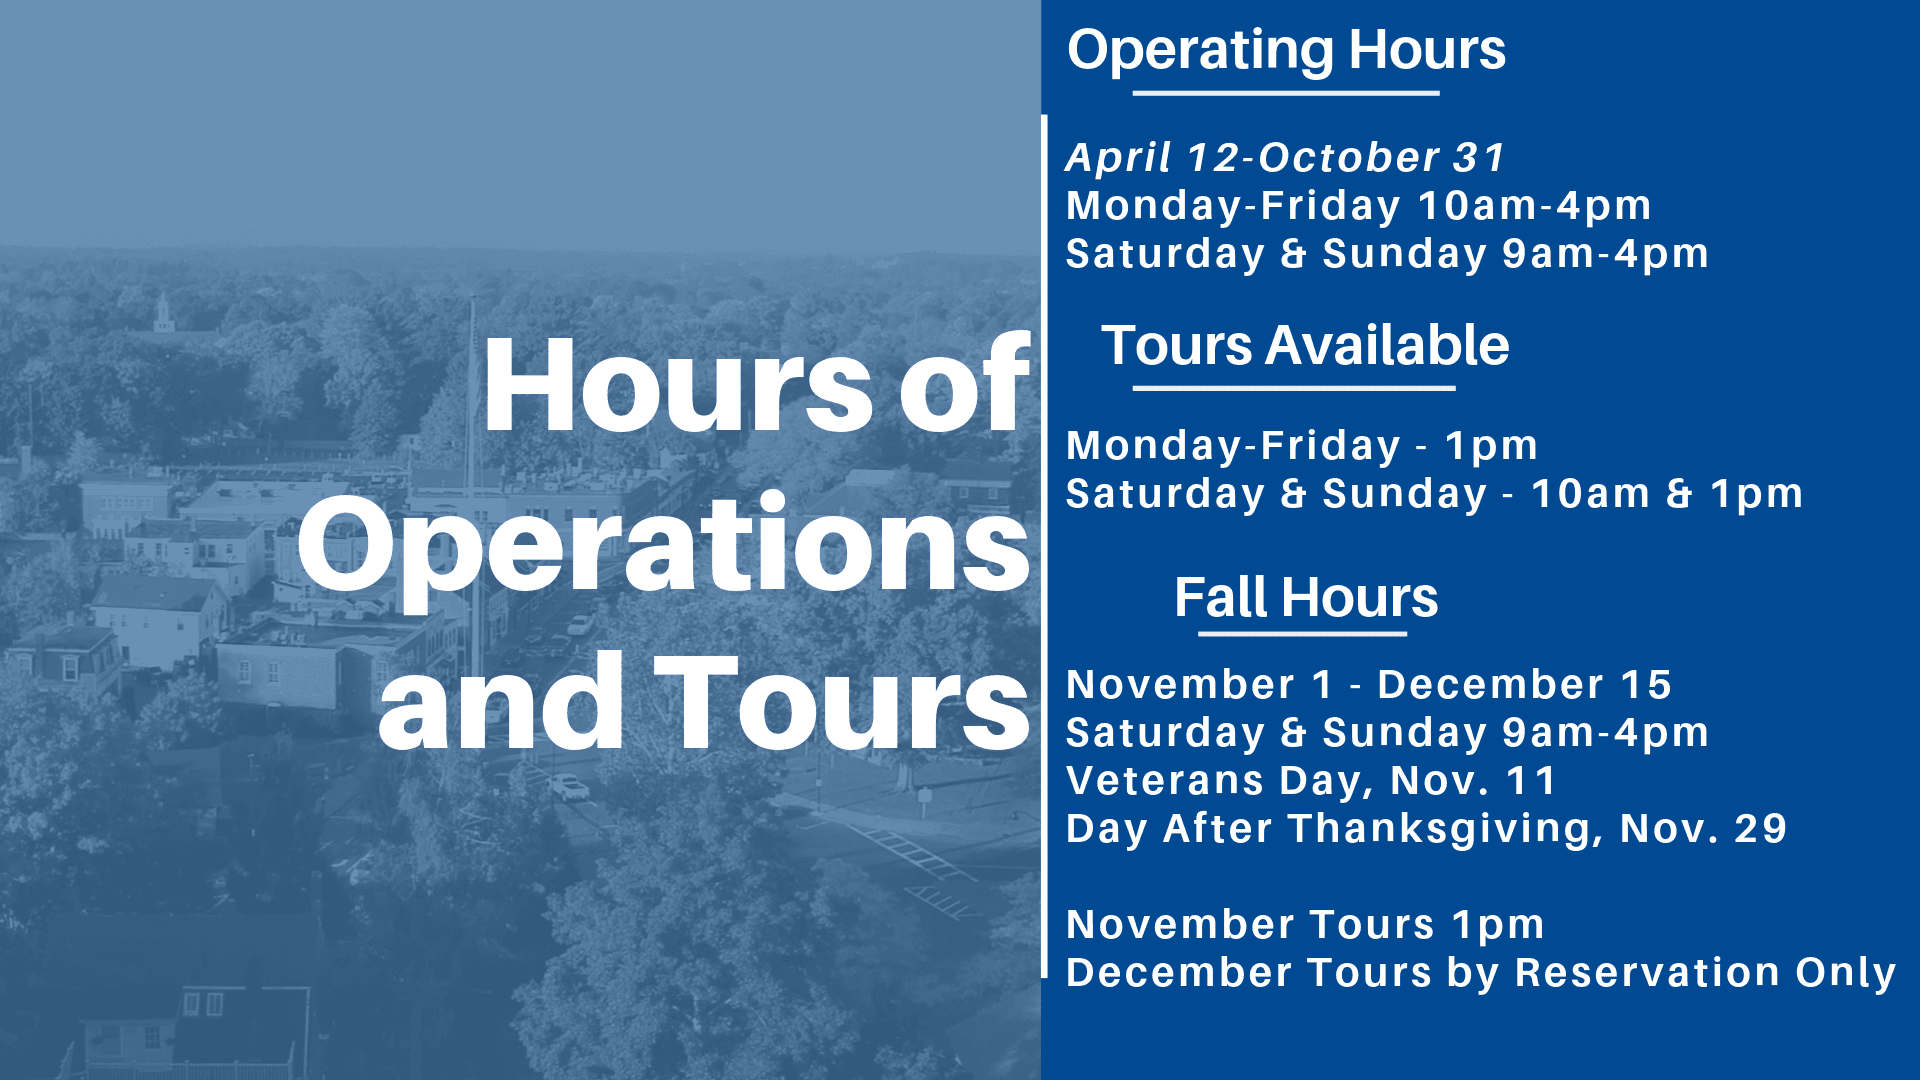 Hours of Operations and Tours